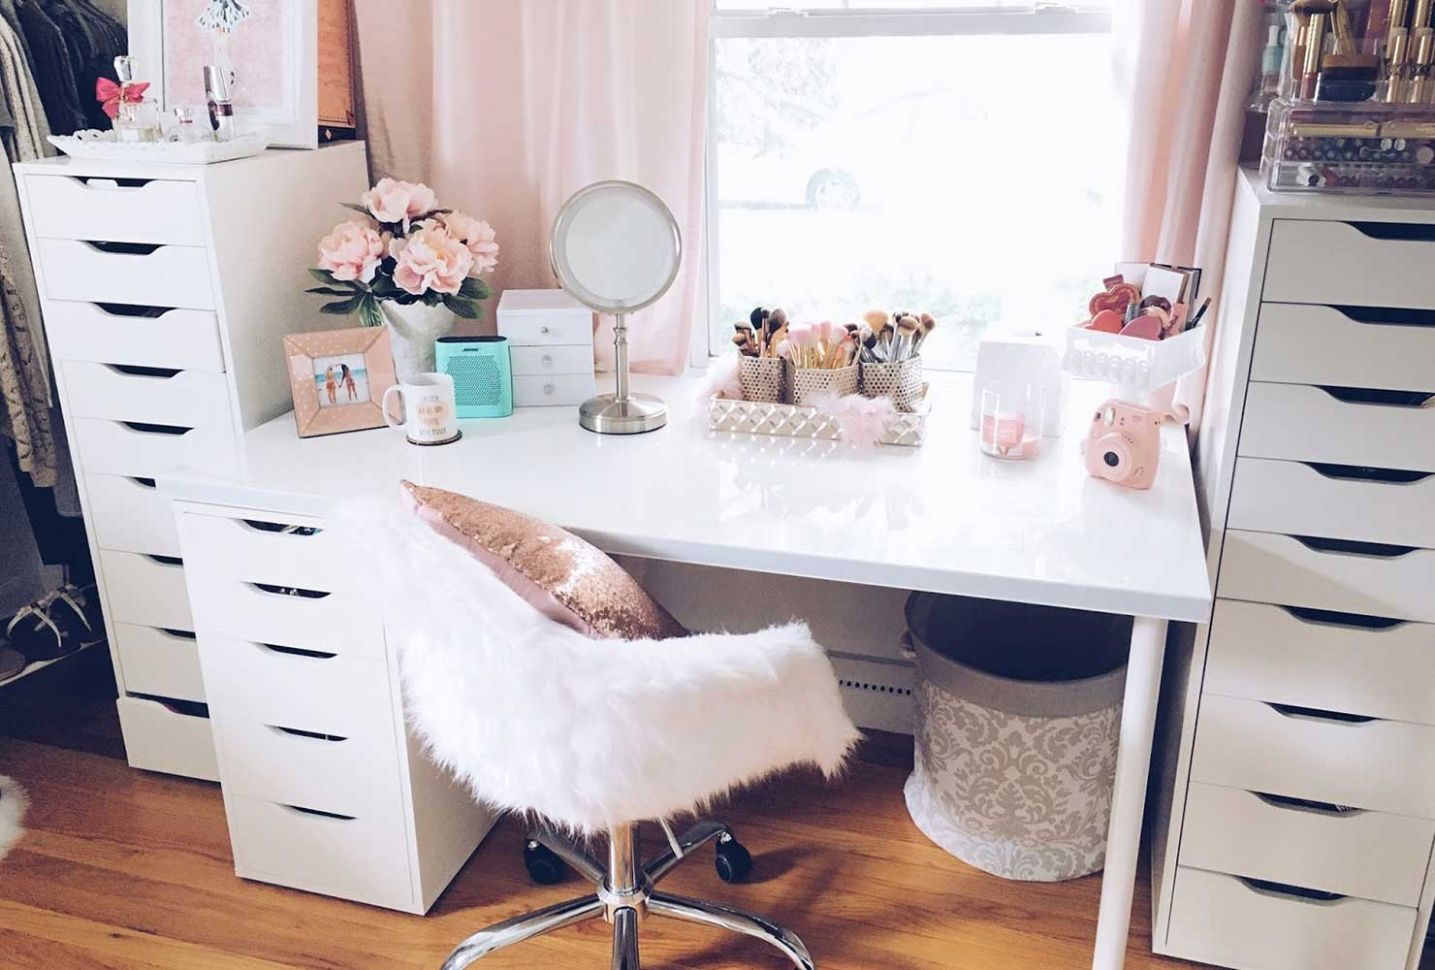 10 Makeup Room Ideas To Brighten Your Morning Routine | Shutterfly - makeup room names